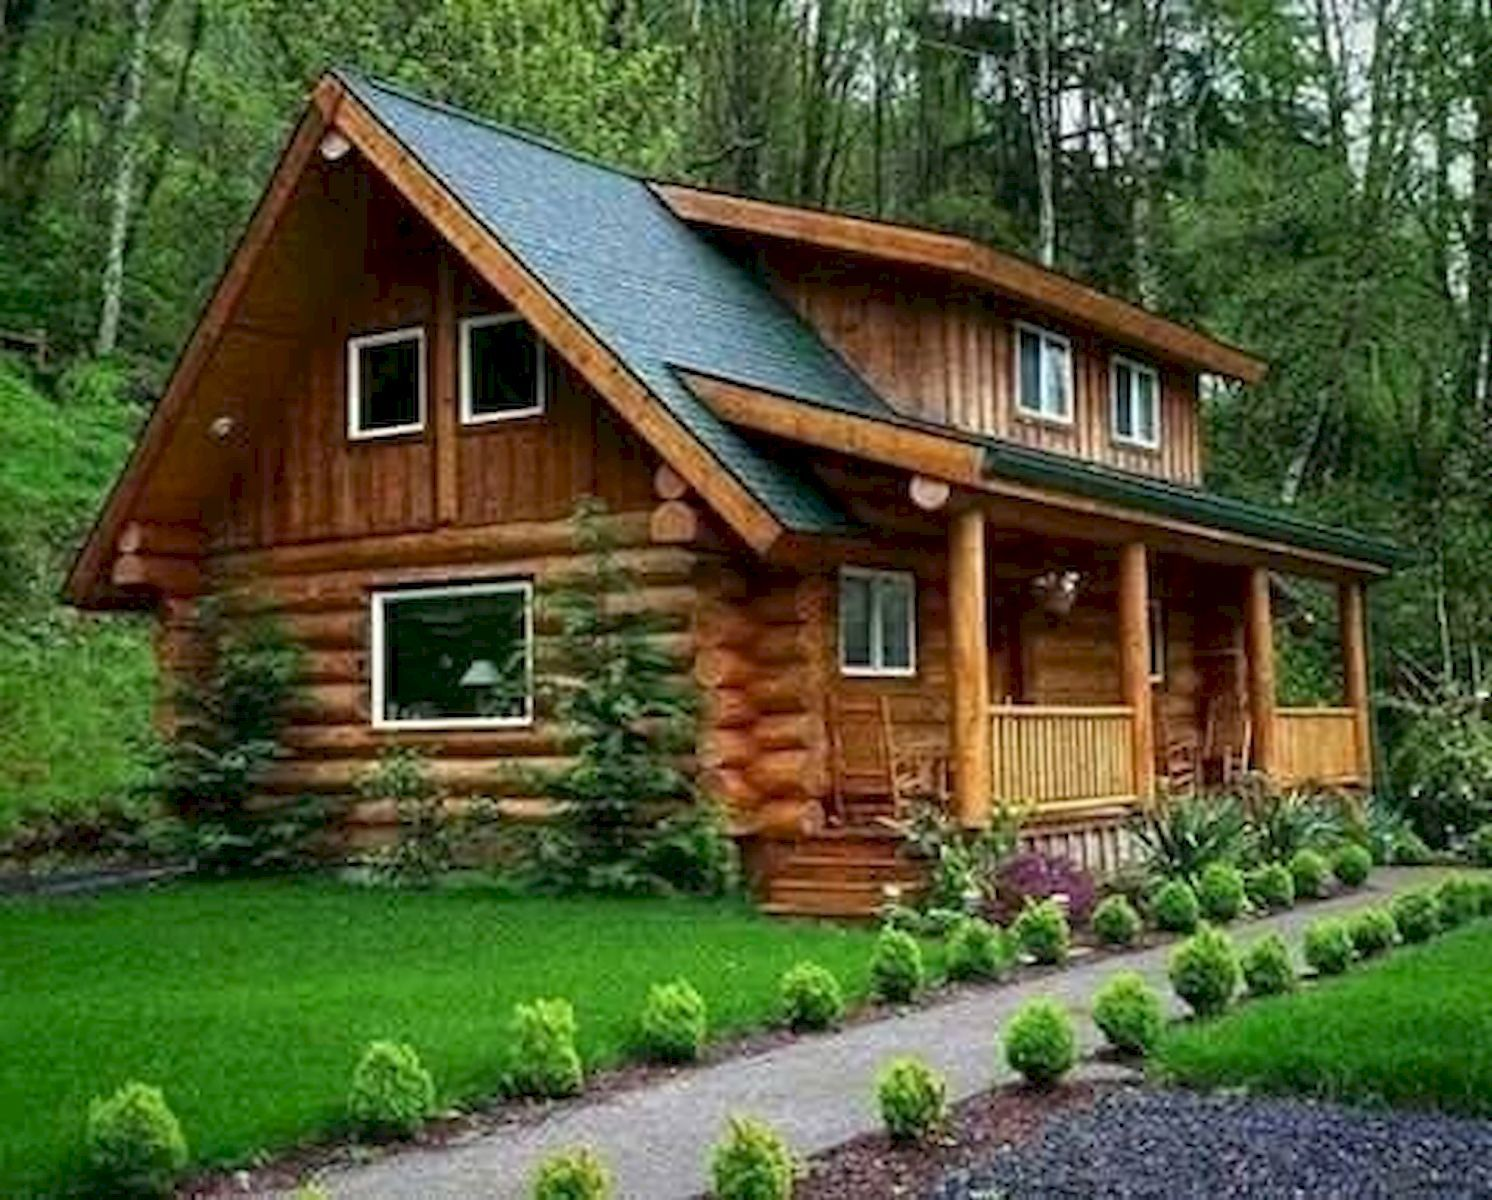 Cool 75 Great Log Cabin Homes Plans Design Ideas Https Livingmarch Com 75 Great Log Cabin Homes Plans Cabins And Cottages House In The Woods Log Cabin Homes